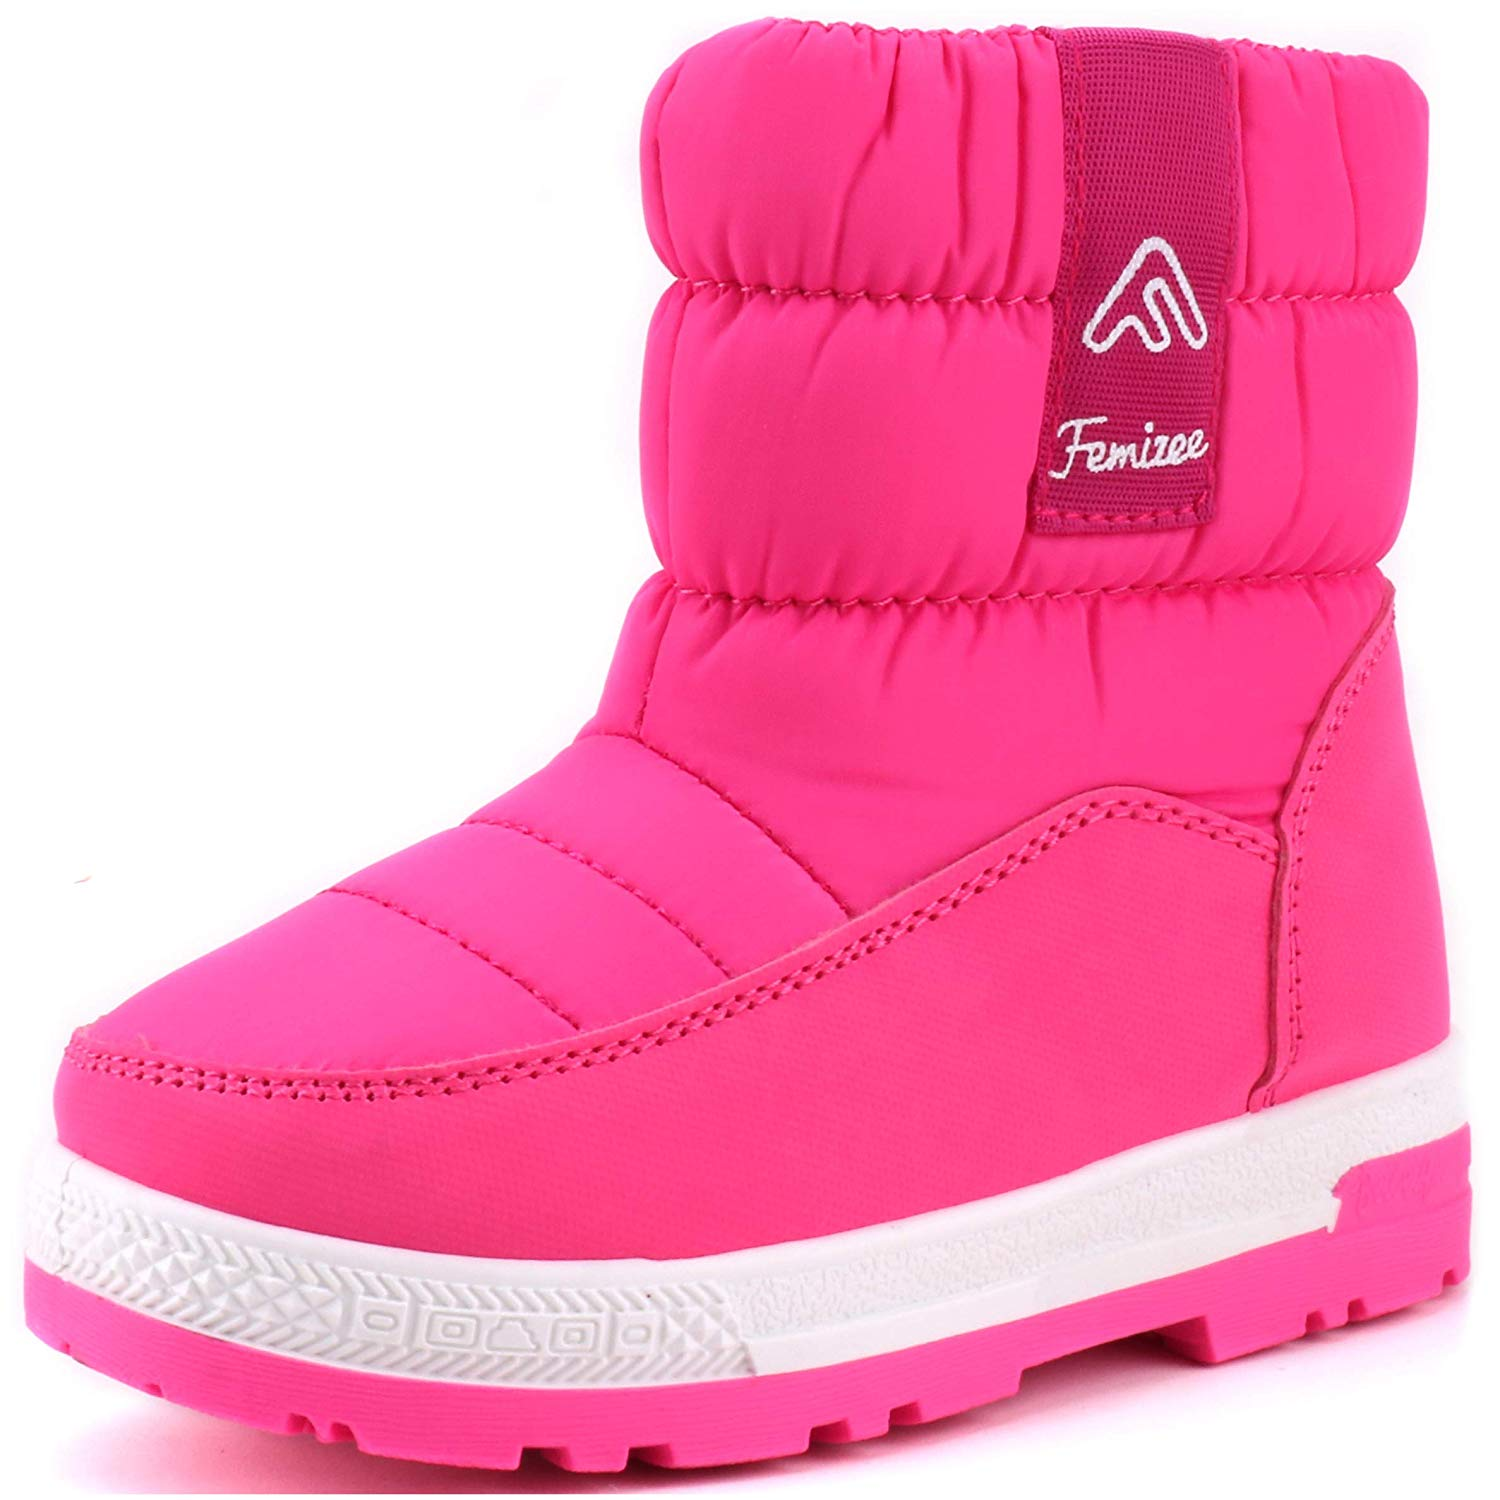 Kvbaby Girls Ankle Snow Boots Winter Warm Outdoor Waterproof Flat Booties Fur Lined Shoes Size